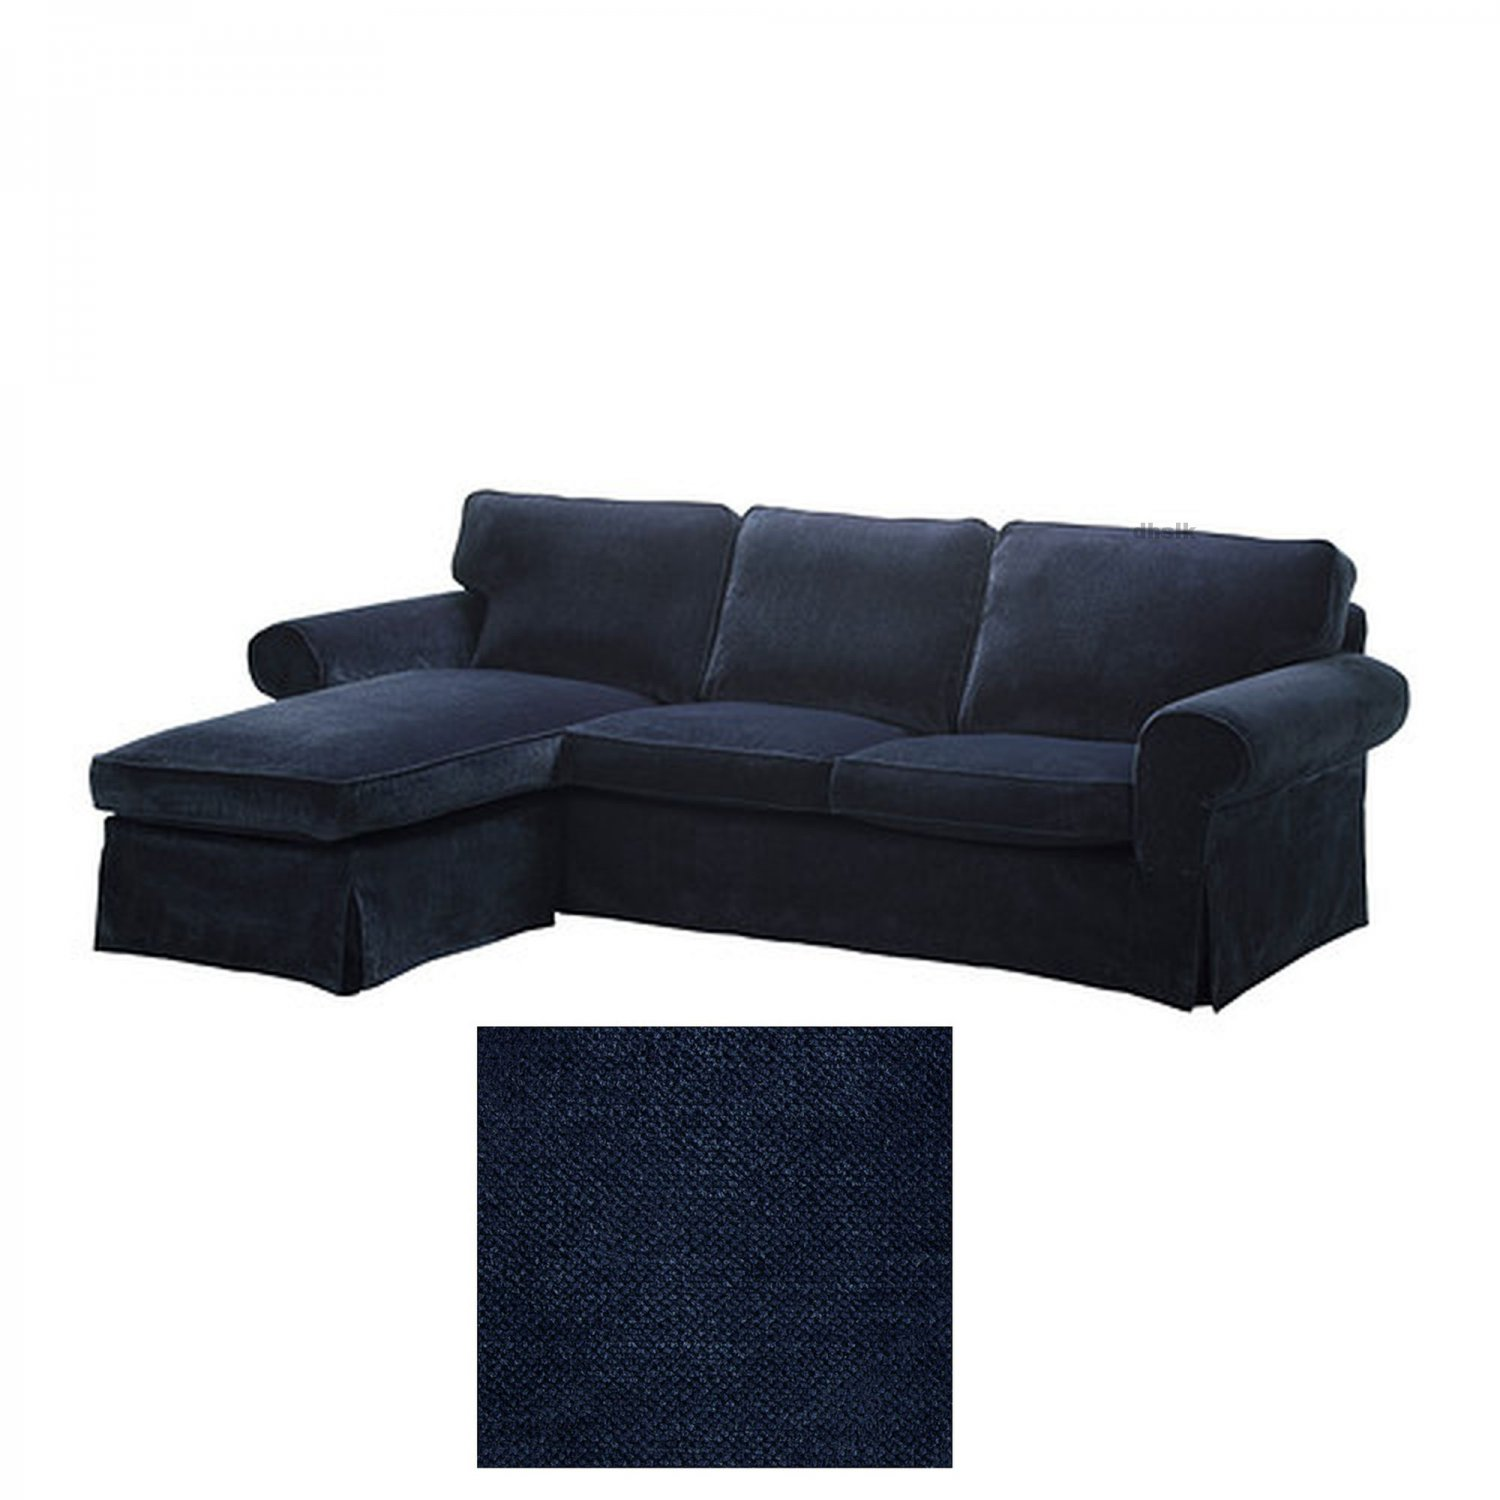 Ikea ektorp 2 seat loveseat sofa with chaise cover slipcover vellinge dark blue Couch and loveseat covers